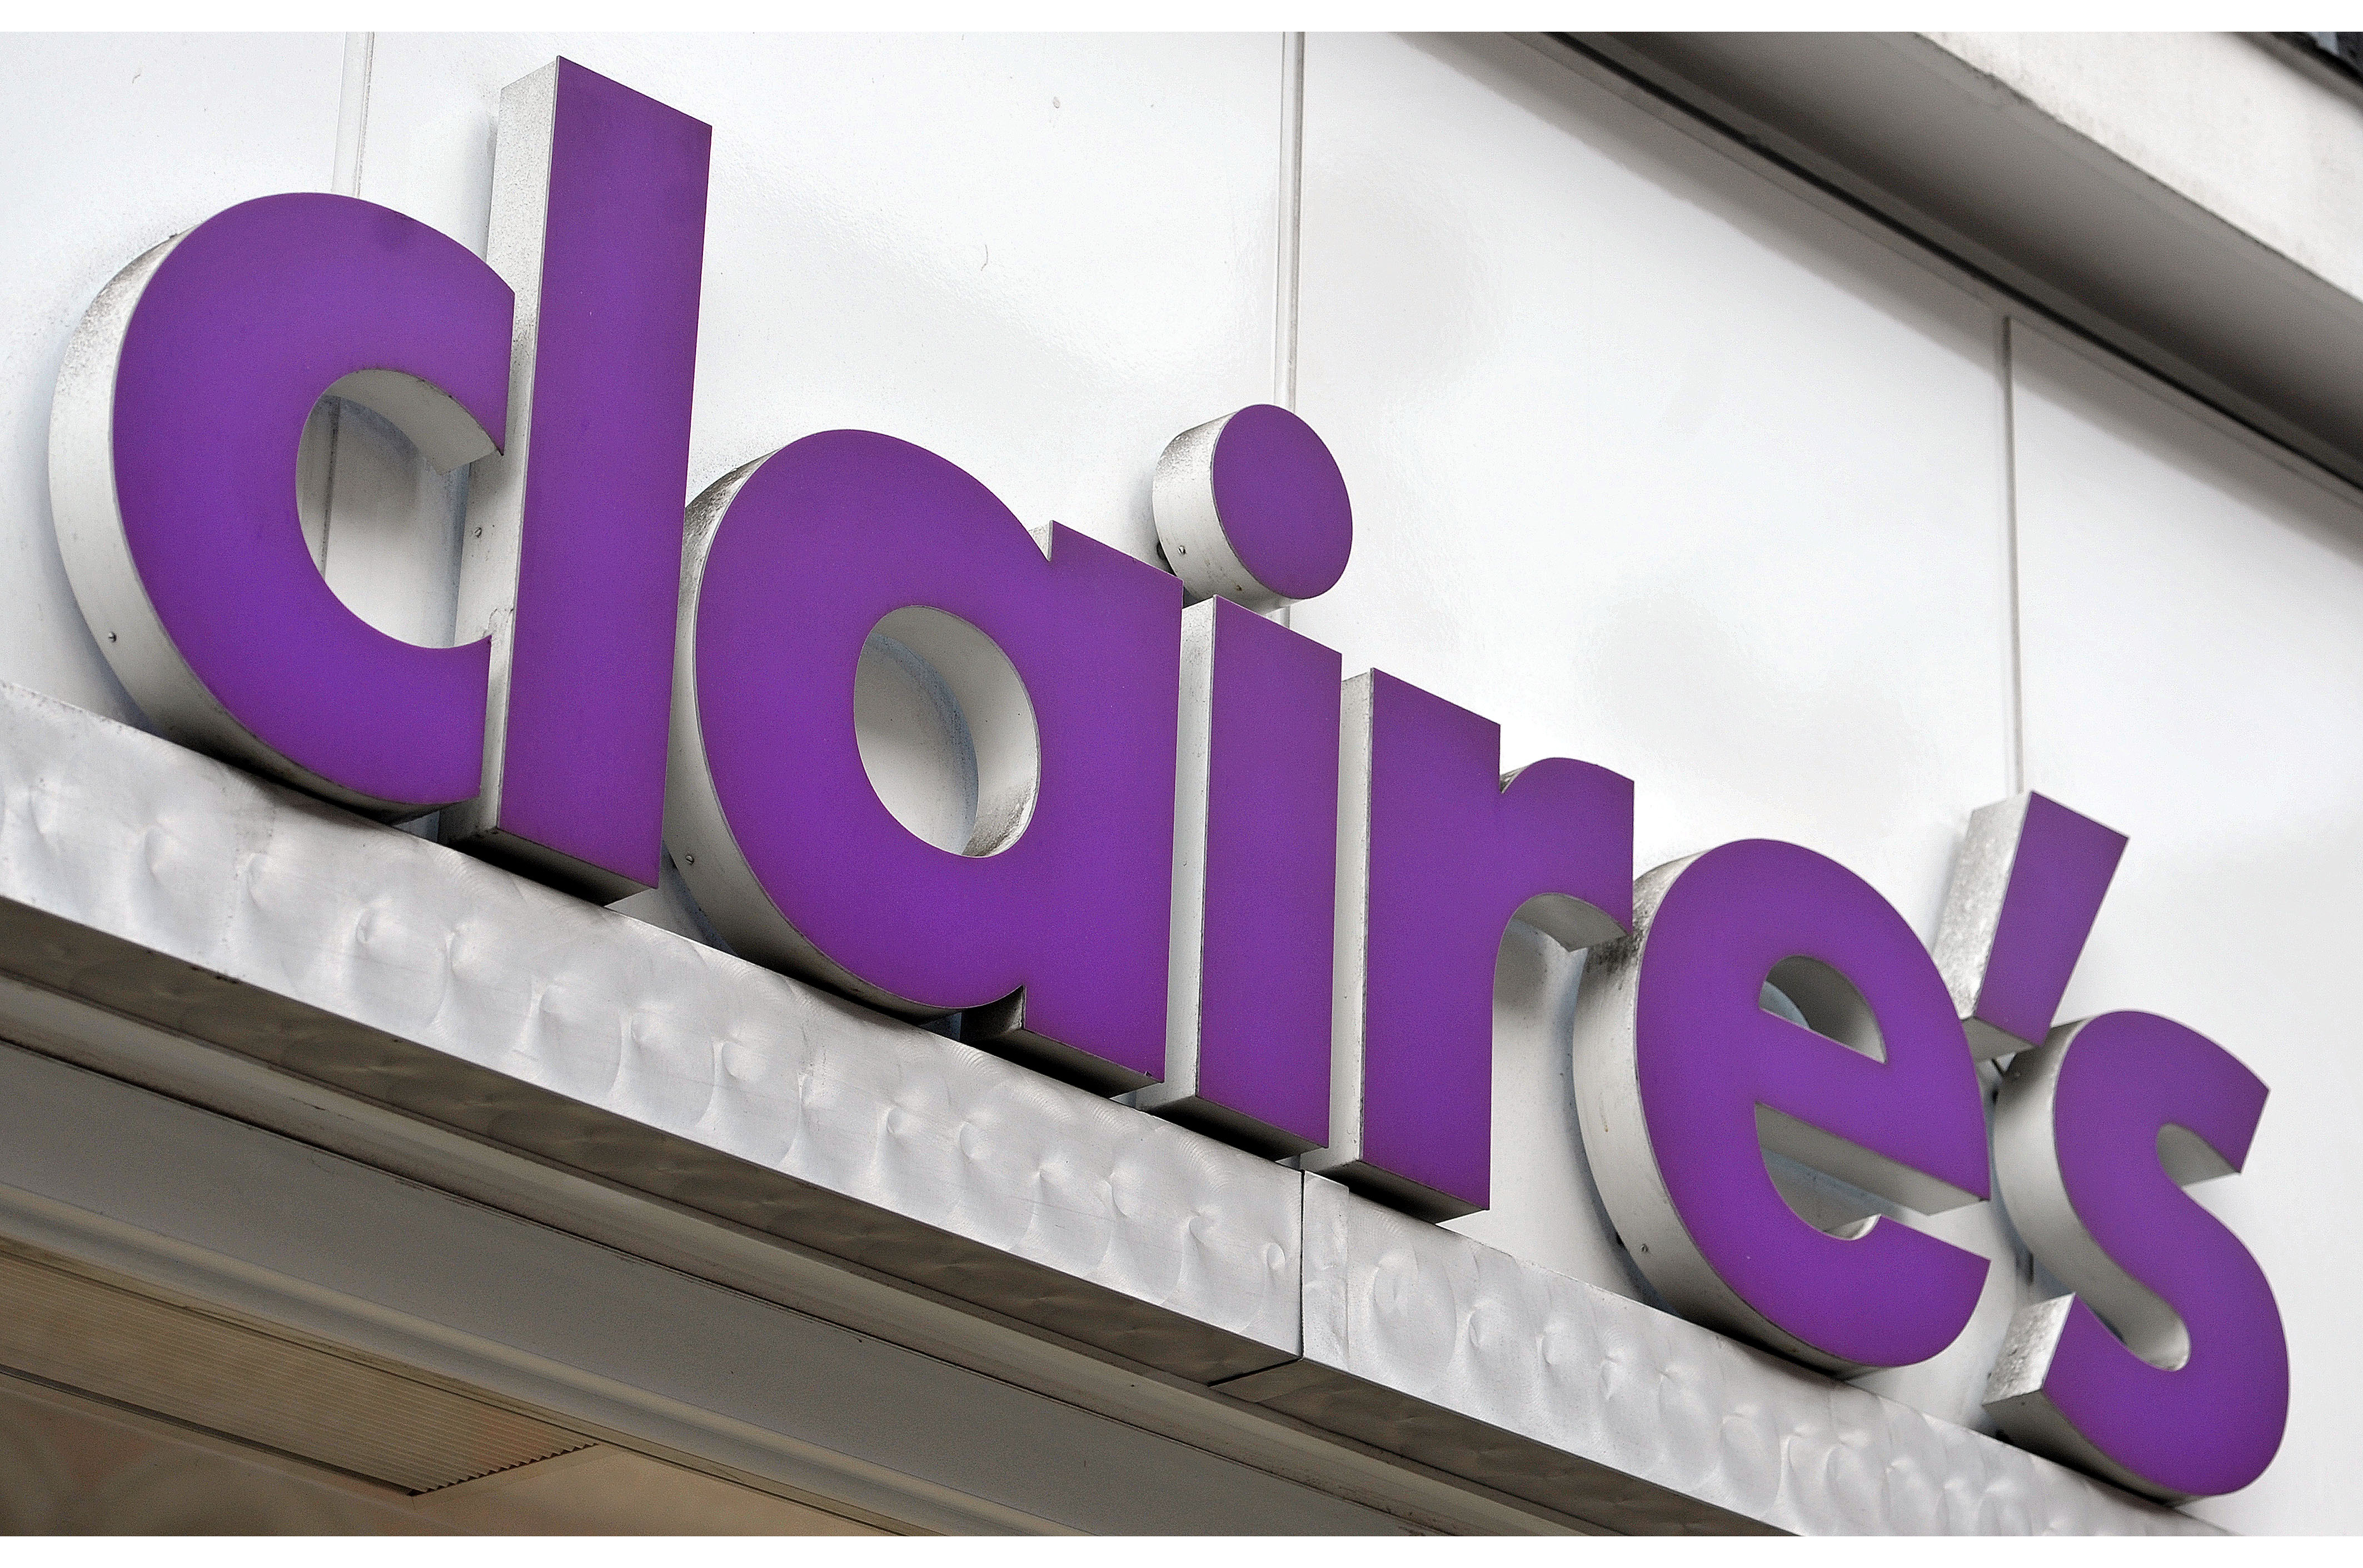 Claire's Stores Expands Partnership with Intalytics to Guide European Expansion